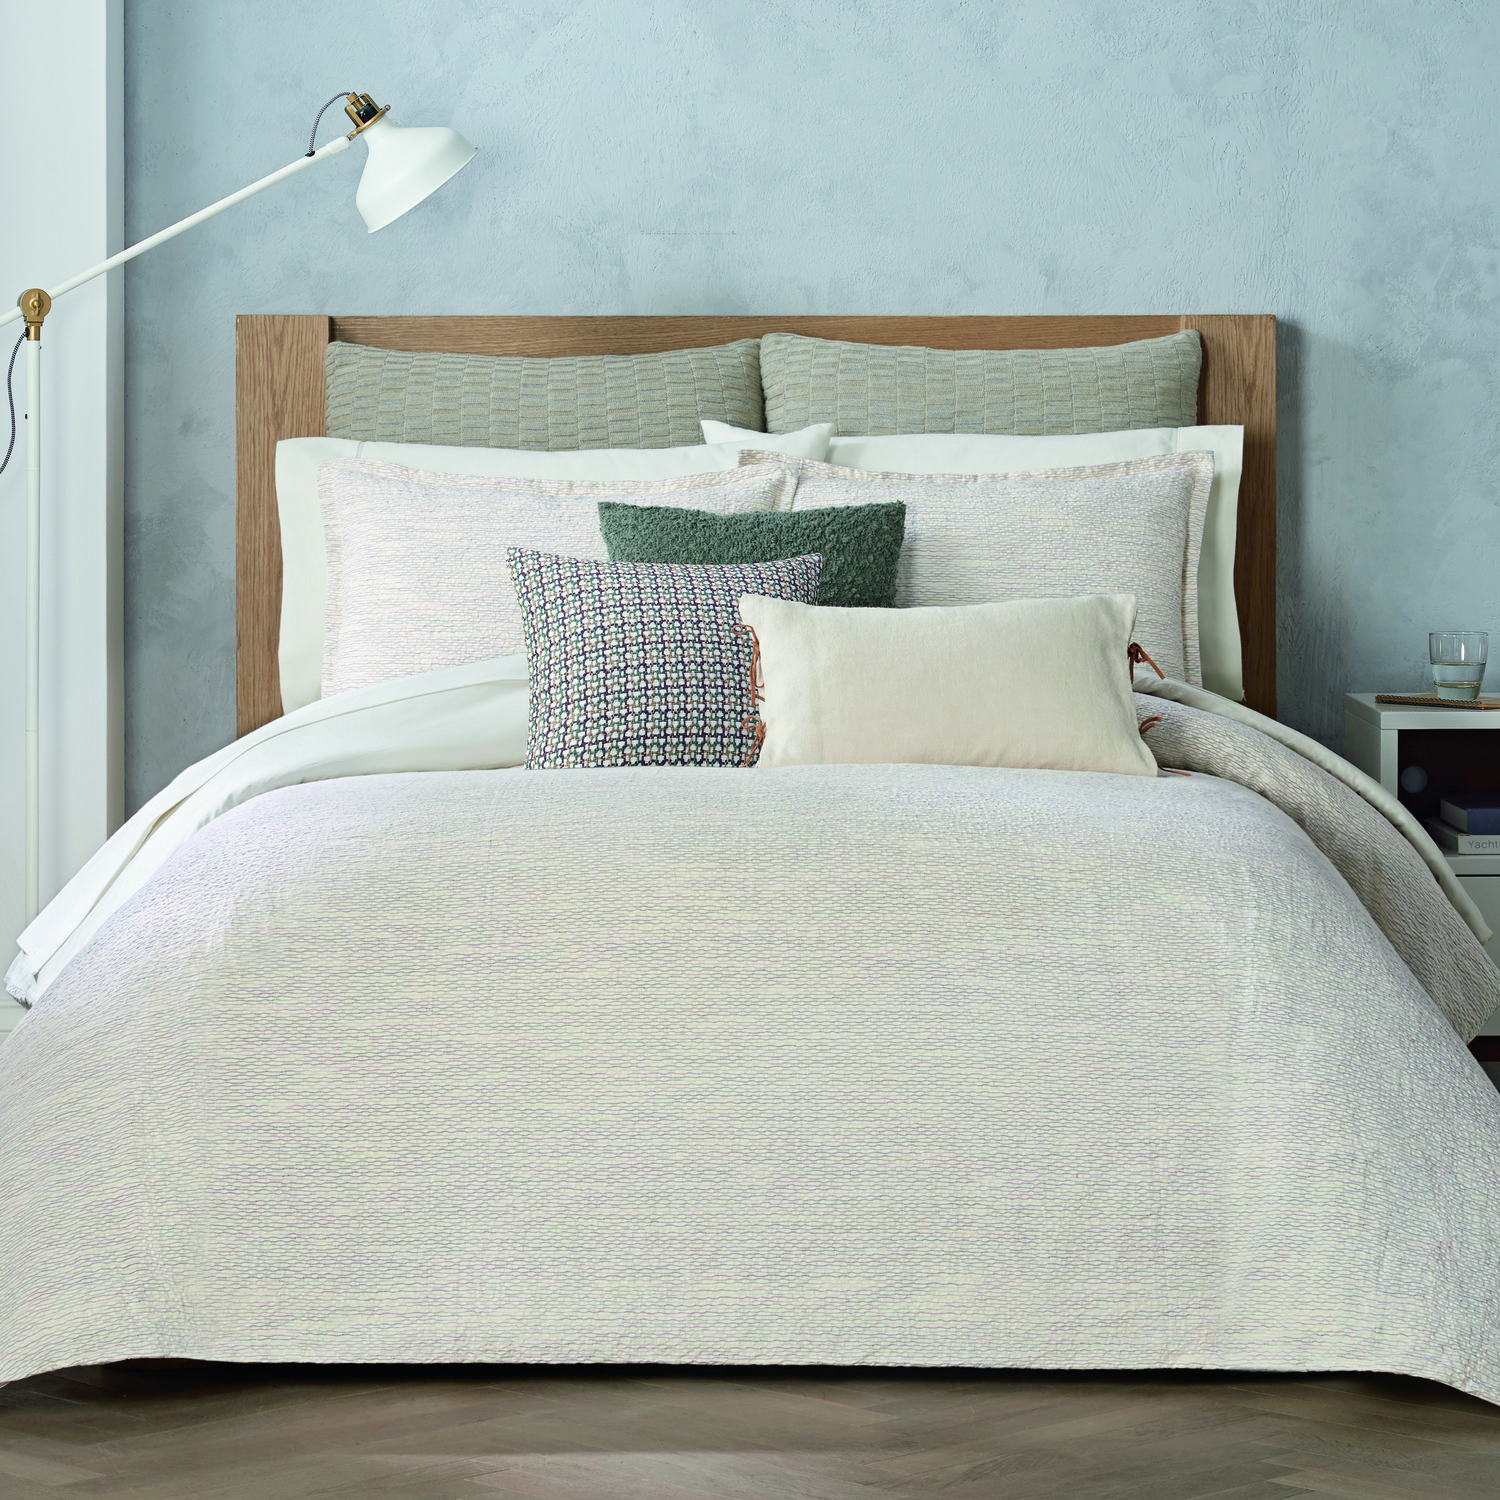 Gaia Stone by Habit by Highline Bedding Co.